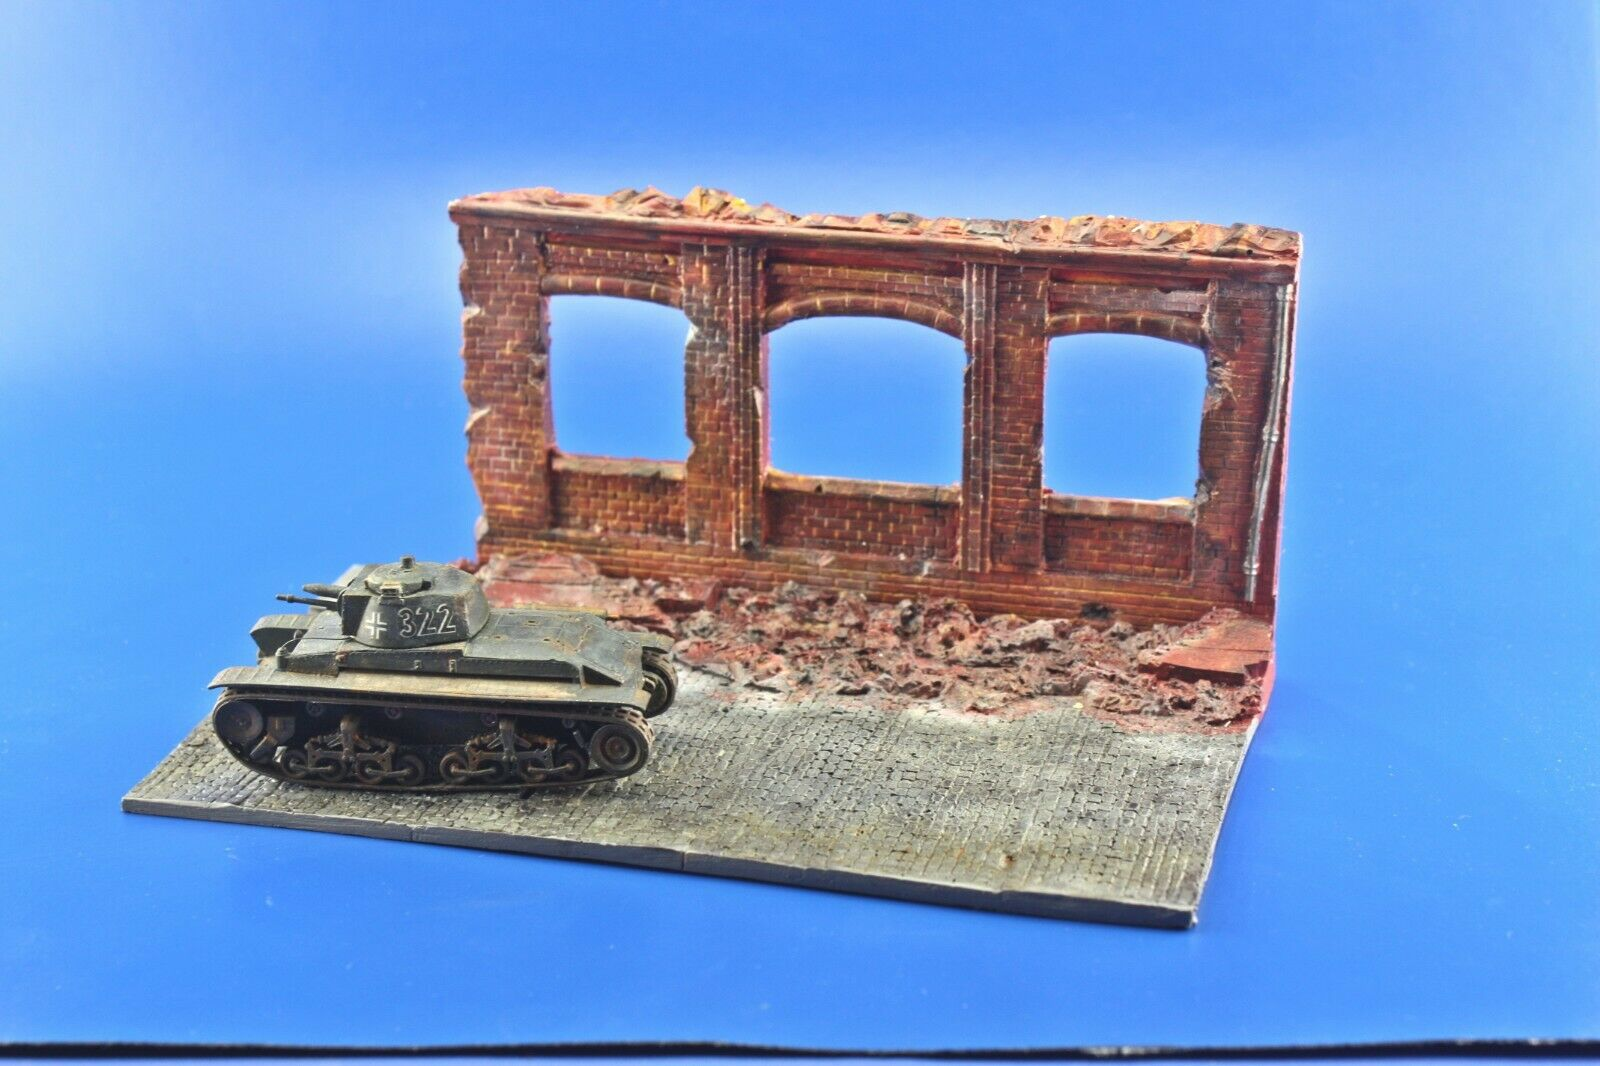 Redog 1/72 Ruined Factory Military Scale Model Display Base Diorama R6 - redoguk